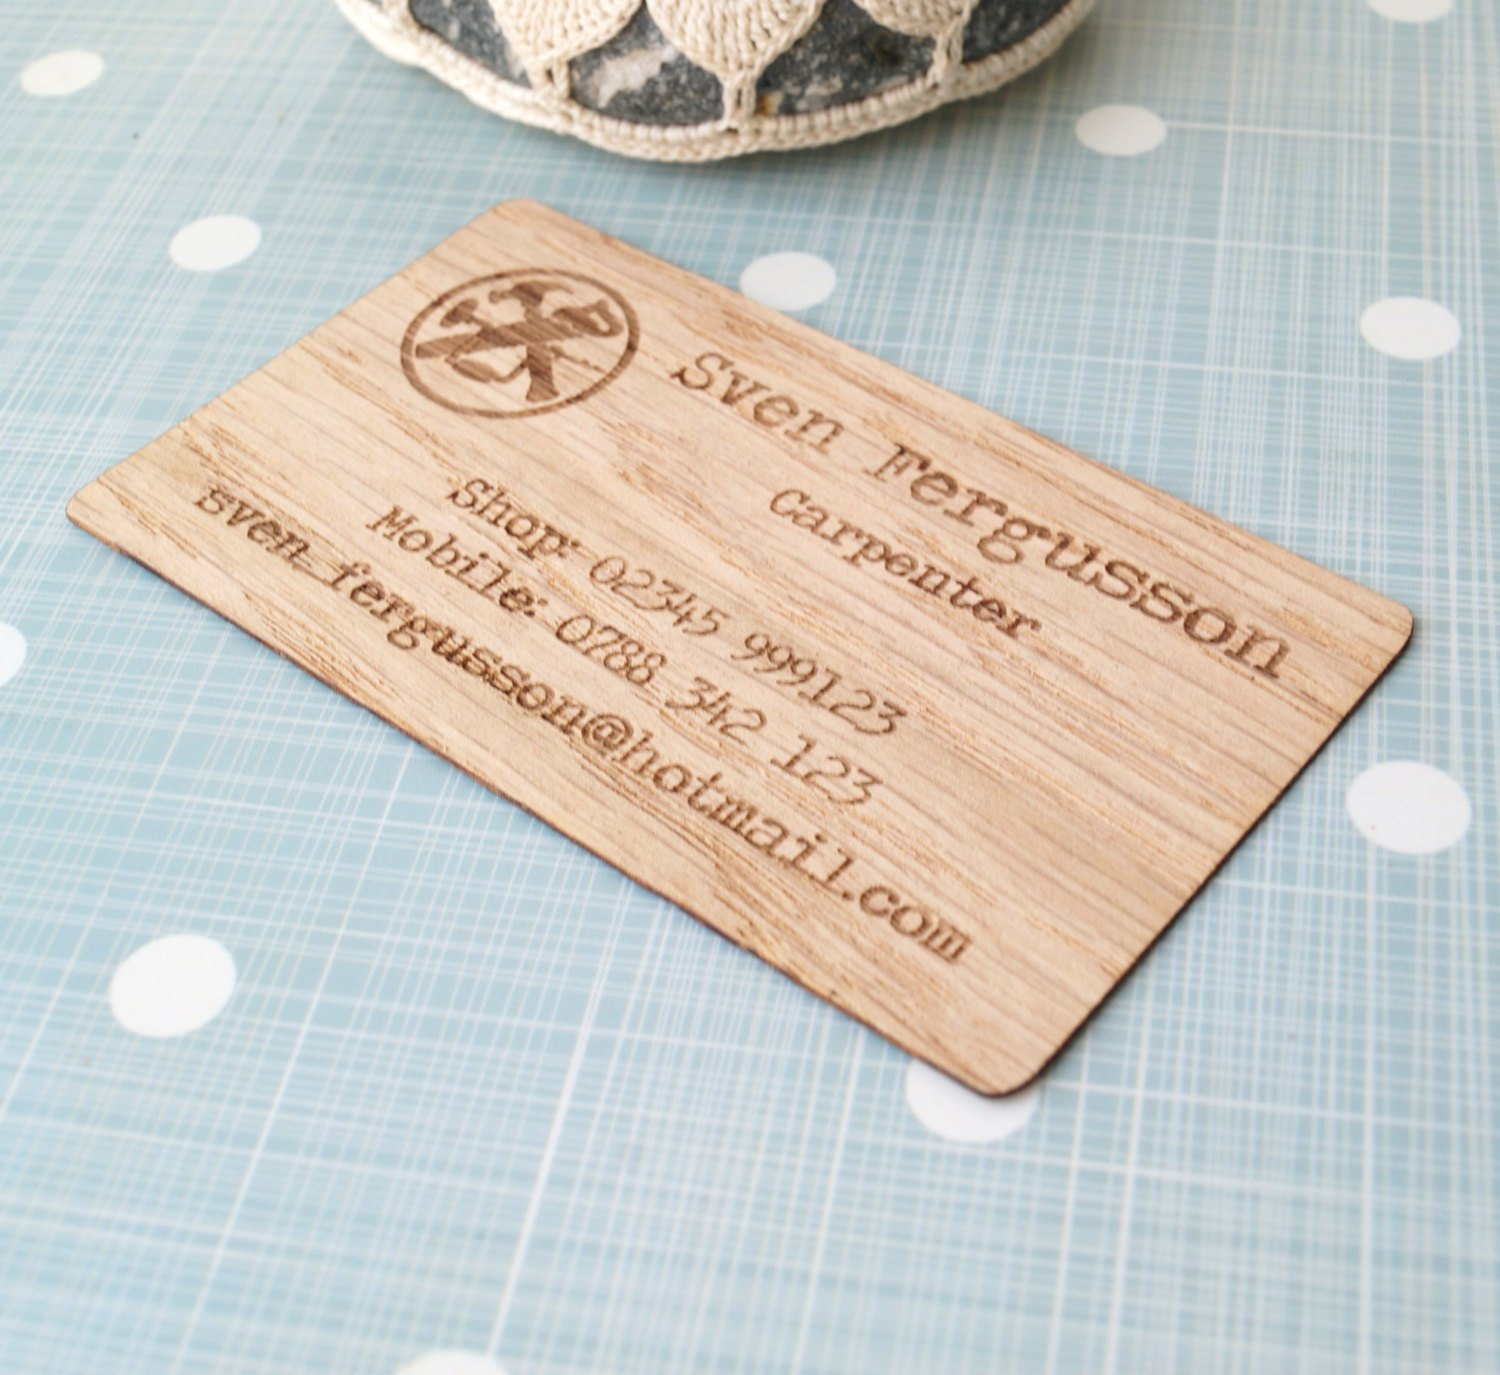 Amazon Business cards set of 50 veneer business cards laser